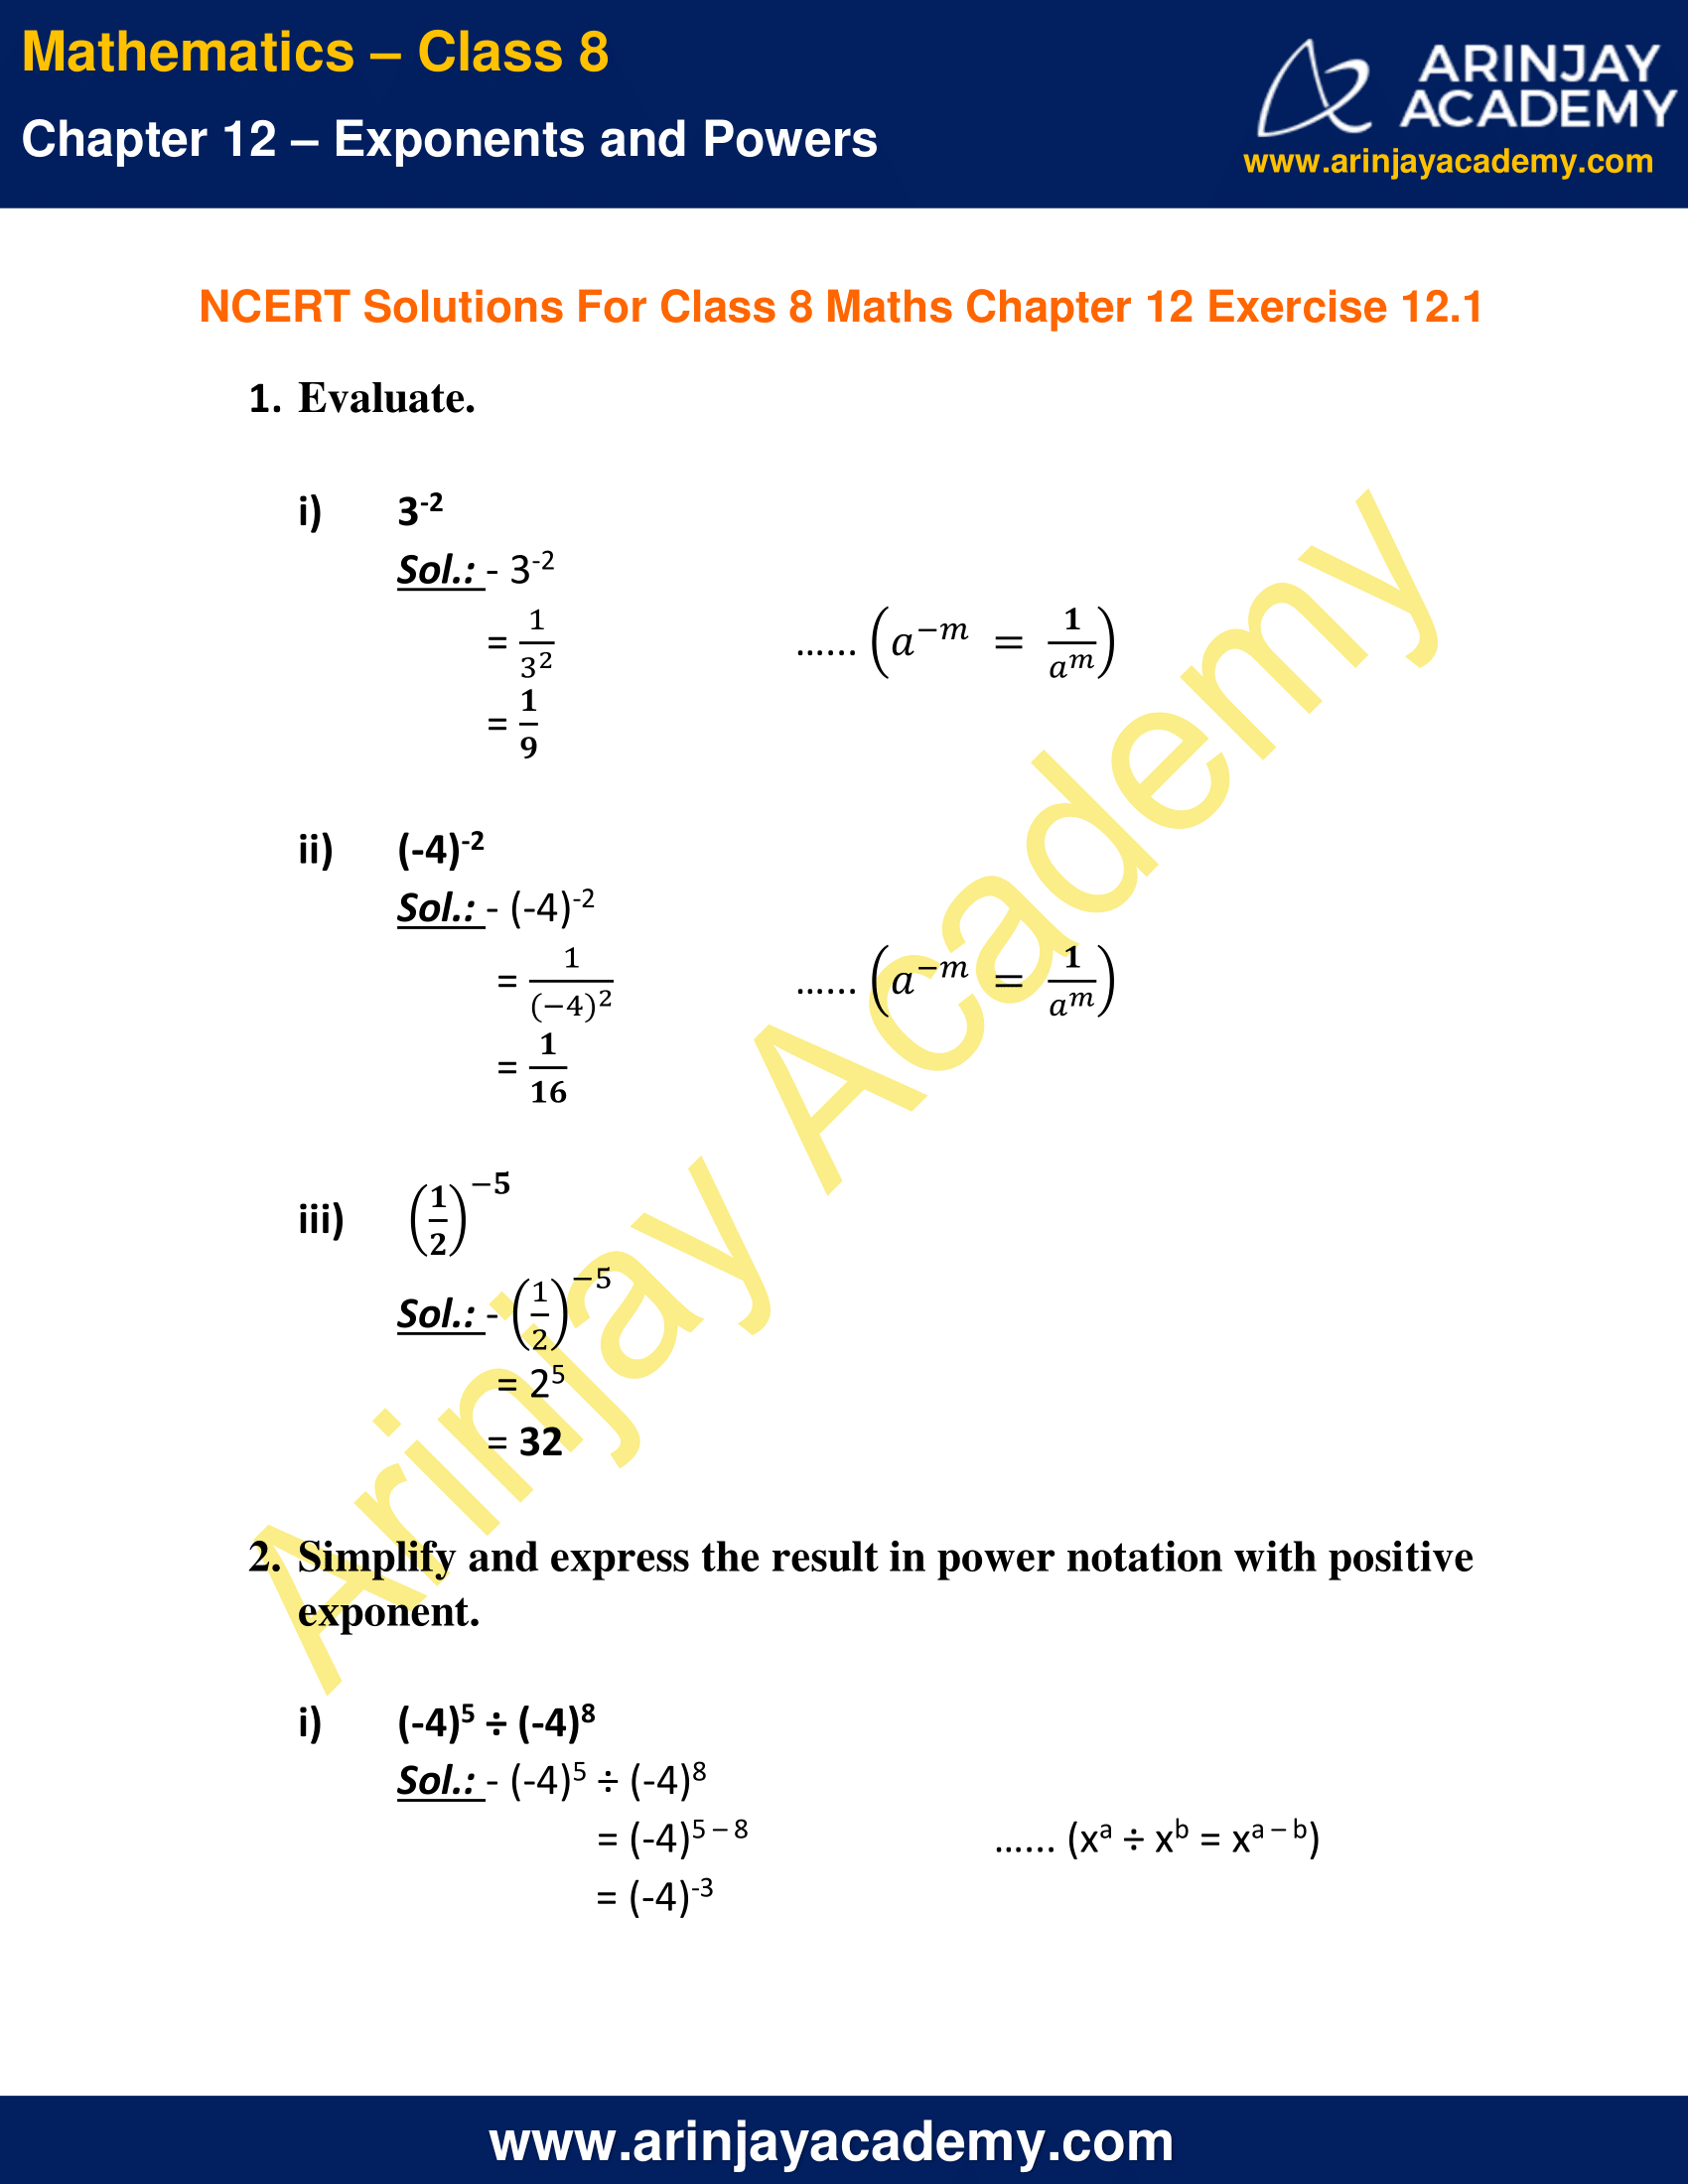 NCERT Solutions for Class 8 Maths Chapter 12 Exercise 12.1 image 1